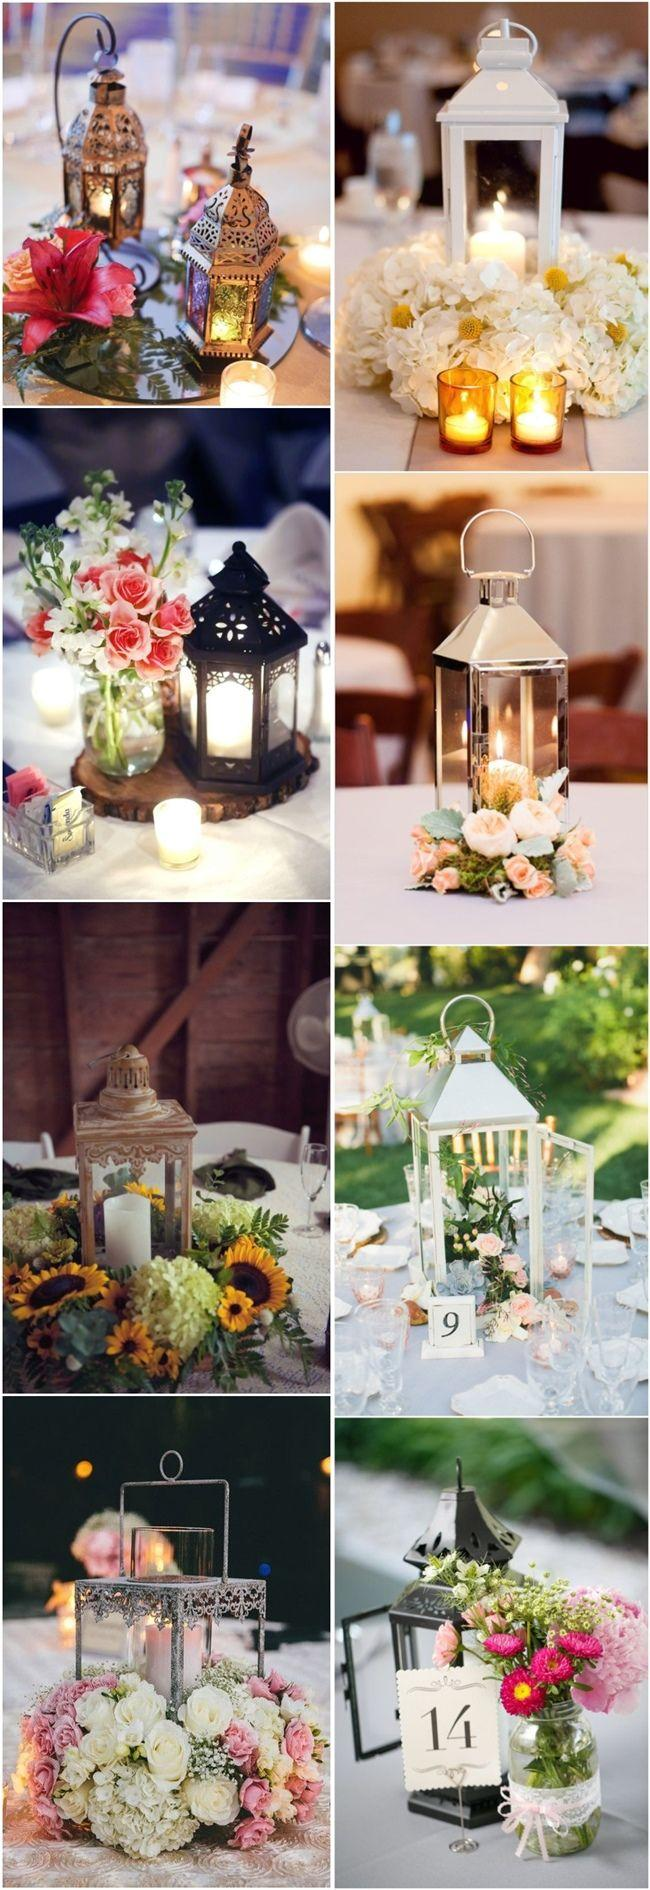 27 Creative Lanterns Wedding Aisle Decor Ideas 2581121